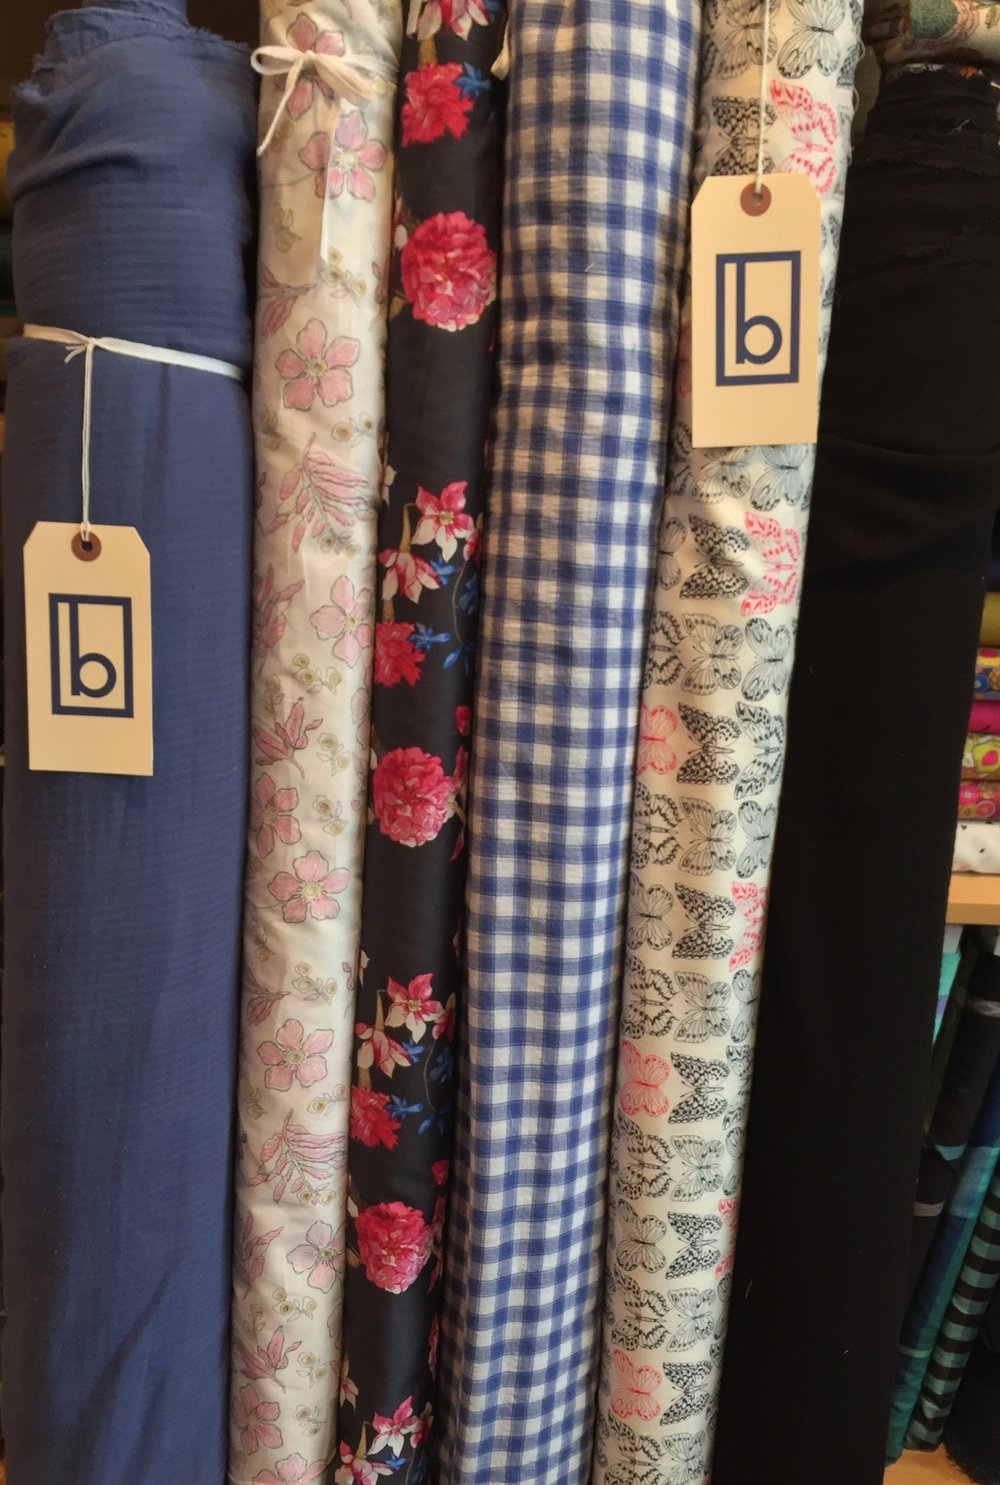 More interesting apparel goodies: super soft, herringbone double ply blue cotton, blossom eyelet print, bright floral lawn, gauzey blue check, crisp cotton butterfly and stretchy, black rayon gauze.